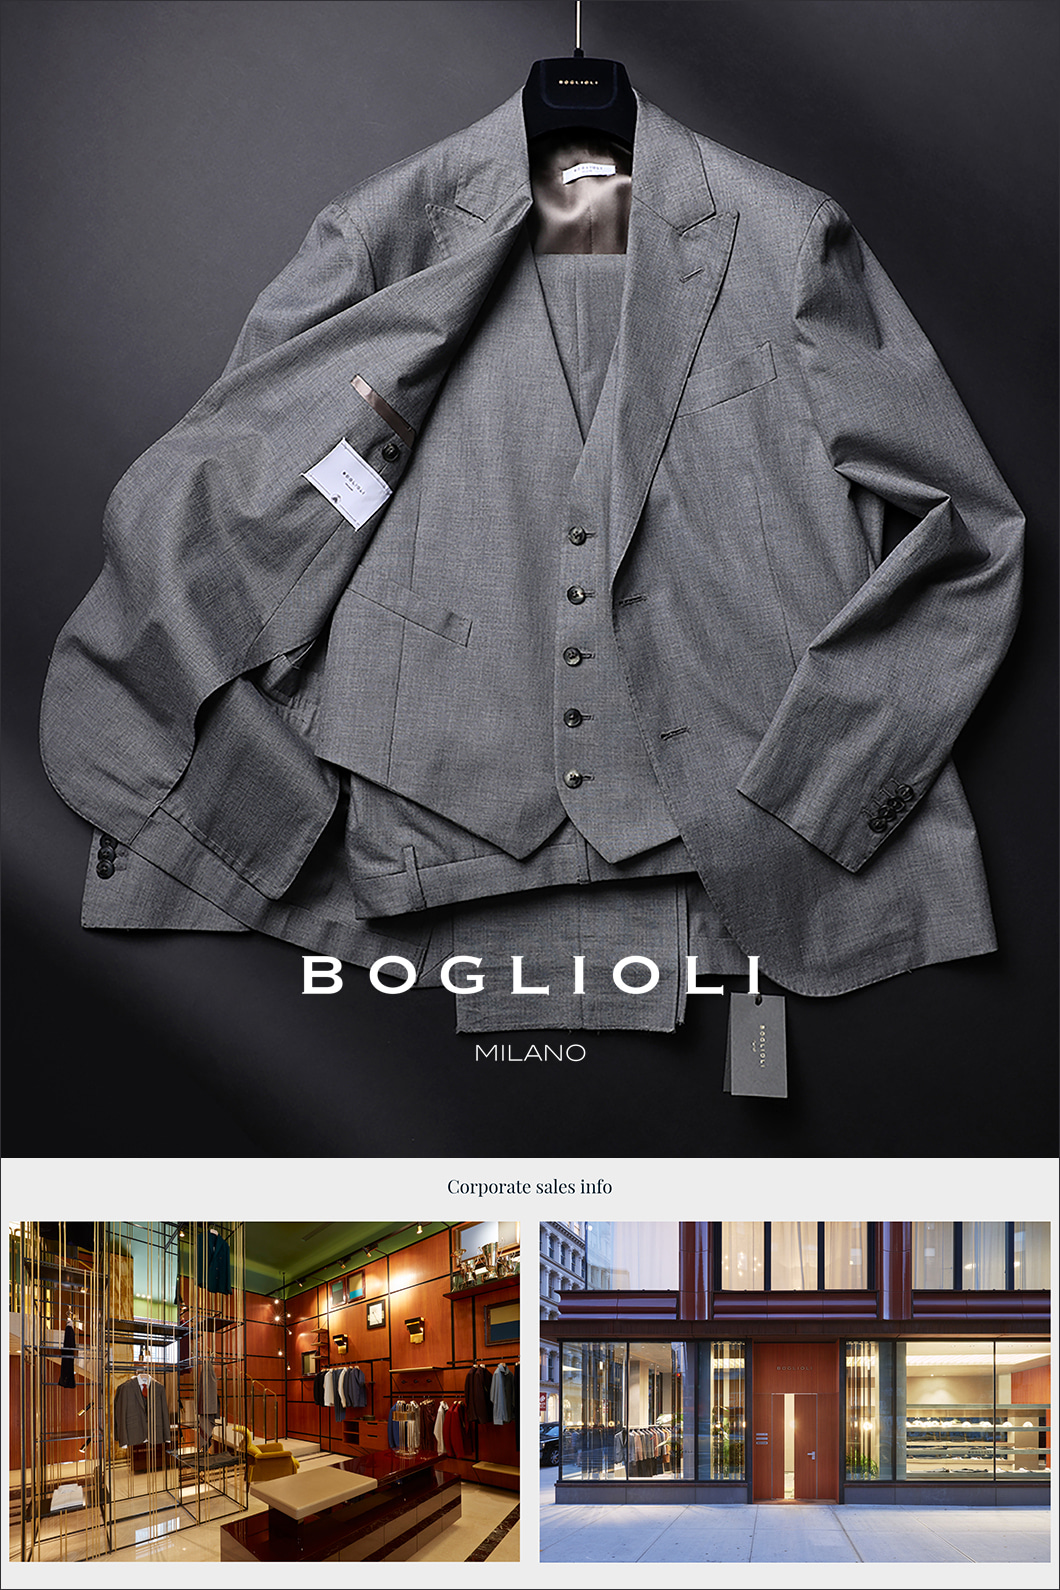 BOGLIOLI THREE PIECE SINGLE SUIT-GRAY비(RAIN) 협찬